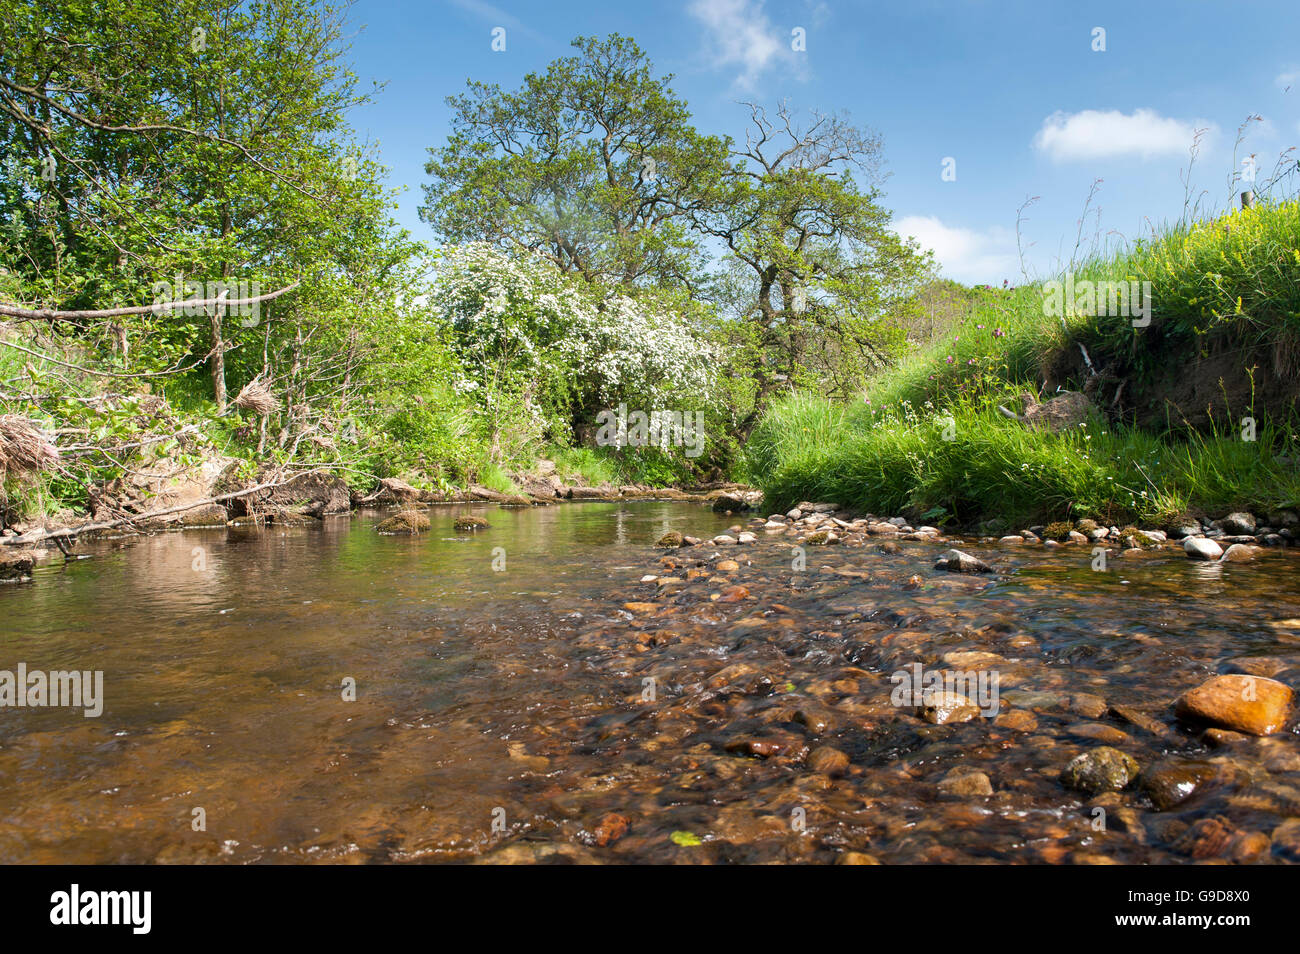 Small, clear unpolluted stream at a field edge, Forest of Bowland, Lancashire, UK - Stock Image